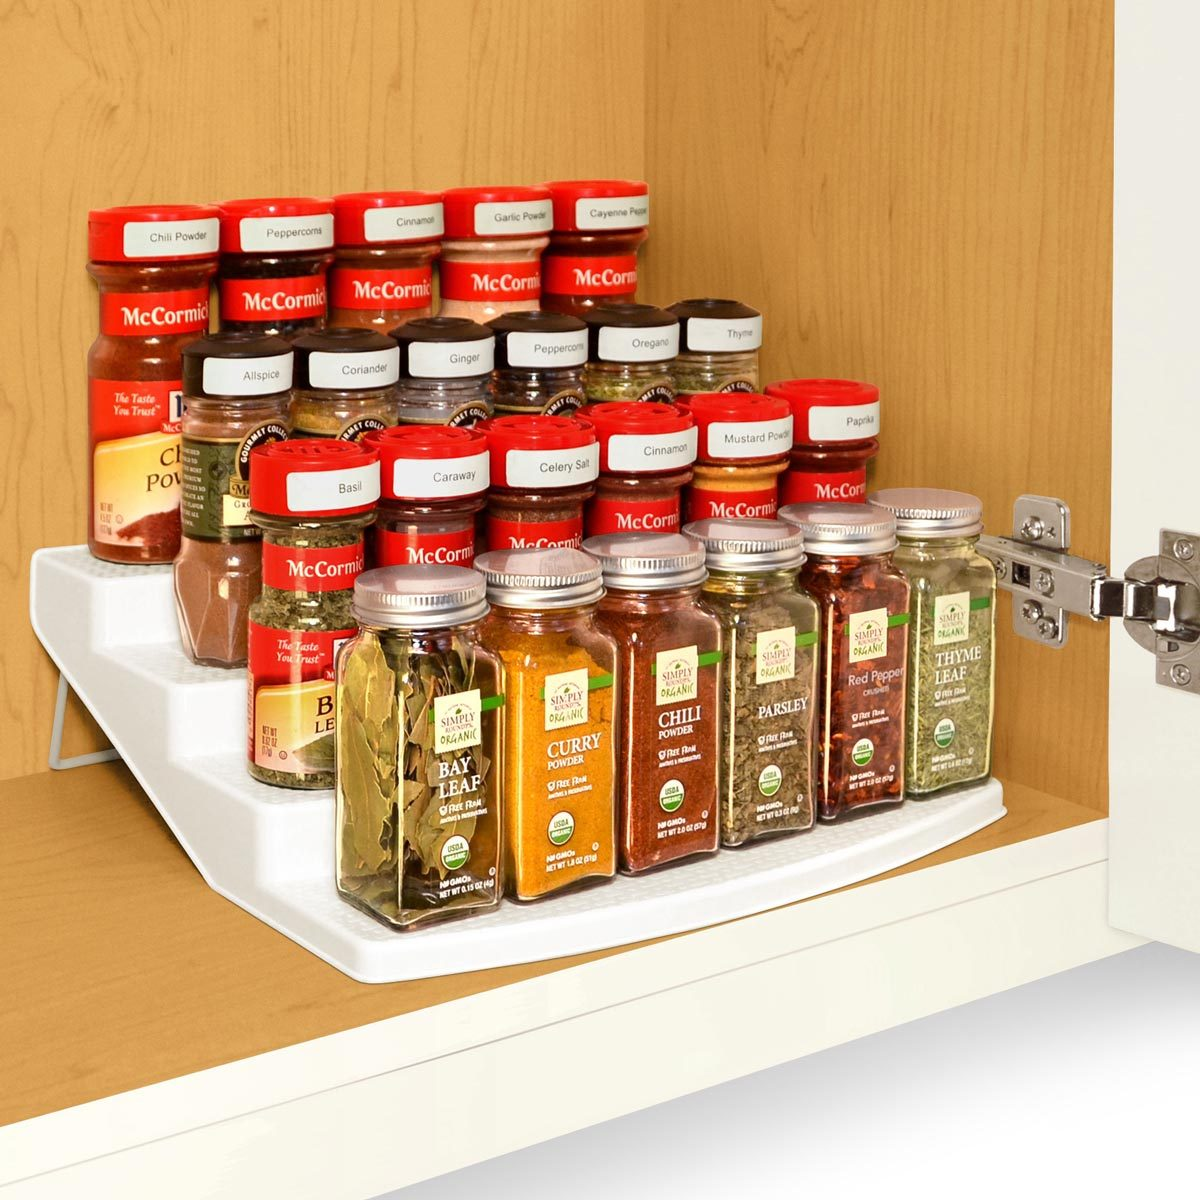 Ingenious Spice Storage Ideas The Family Handyman - Plastic spice racks for kitchen cabinets